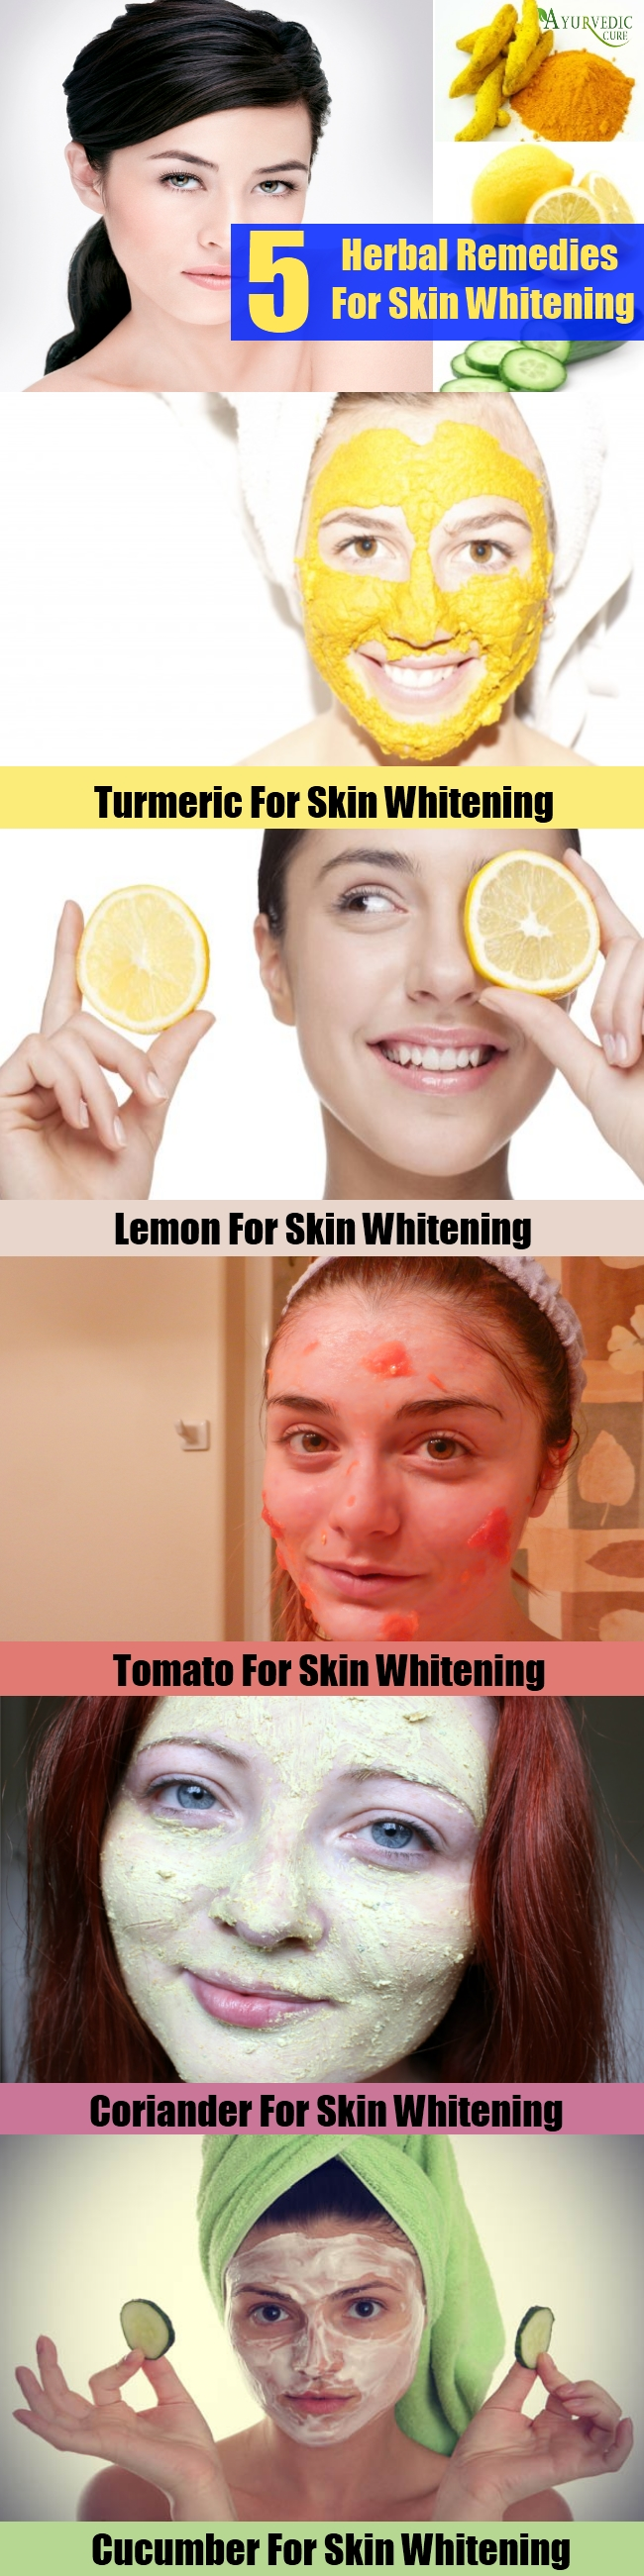 Top Herbal Remedies For Skin Whitening